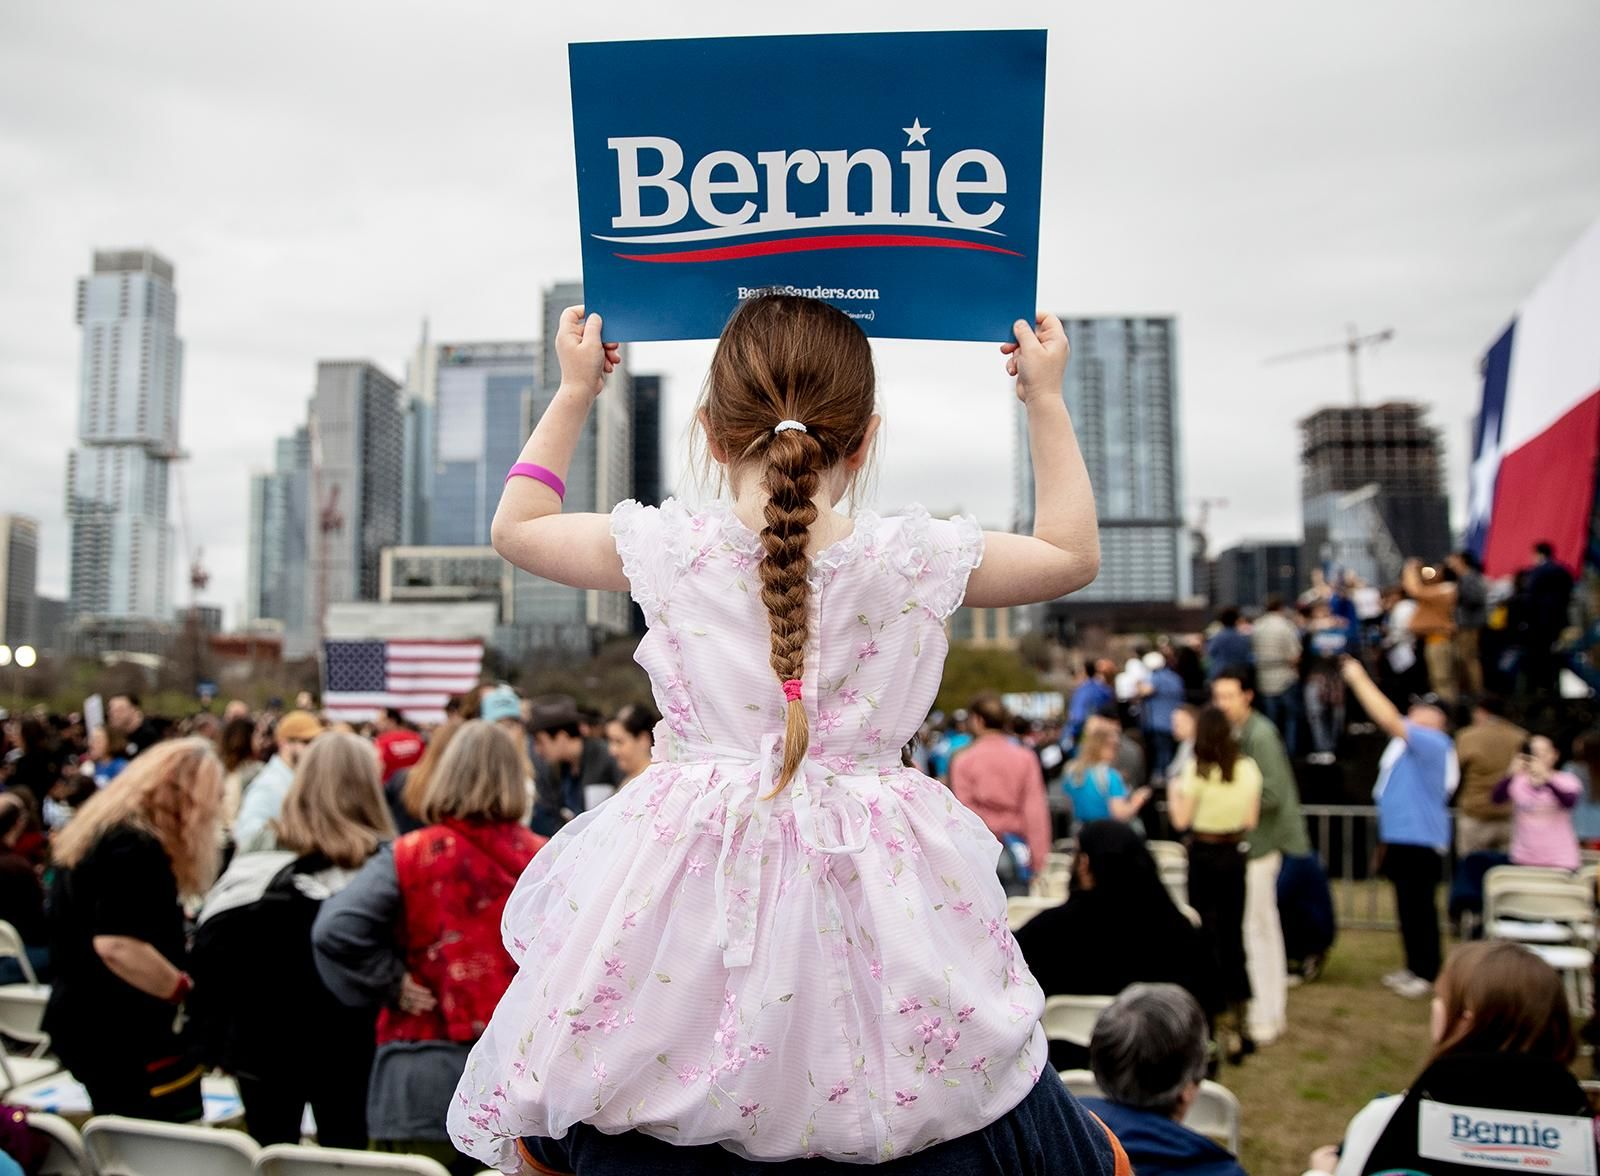 Lily Barbour, 5, holds up a campaign sign for Democratic presidential candidate Sen. Bernie Sanders, I-Vt., during a campaign event in Austin, Texas, Sunday, Feb. 23, 2020. (Nick Wagner/Austin American-Statesman via AP)